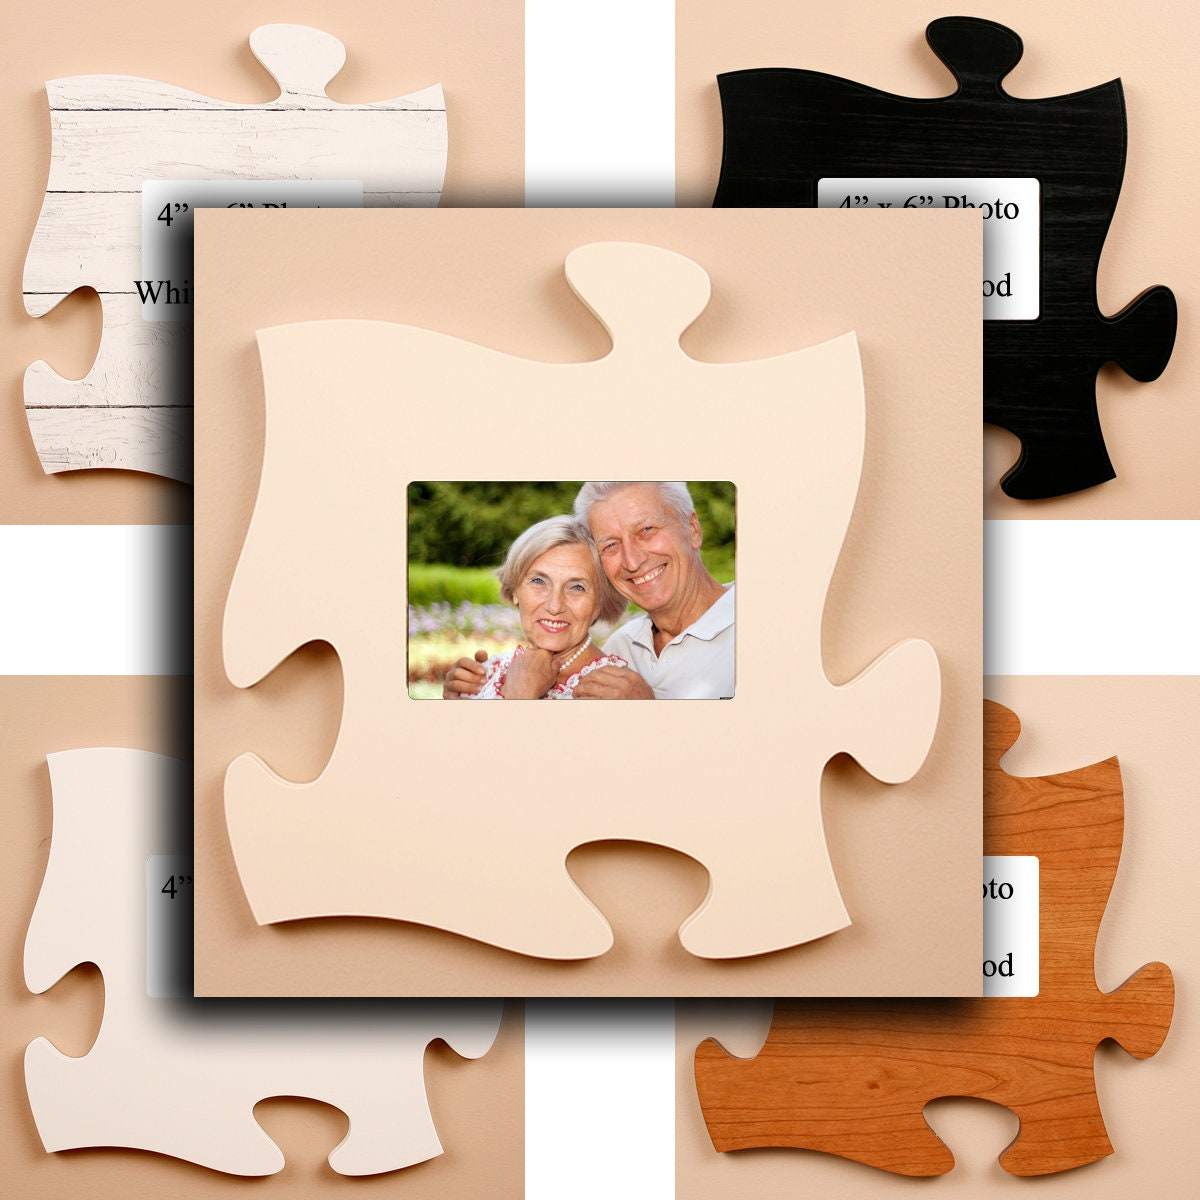 Puzzle Picture Frame (Blank), 4x6 Photo, Puzzle Photo